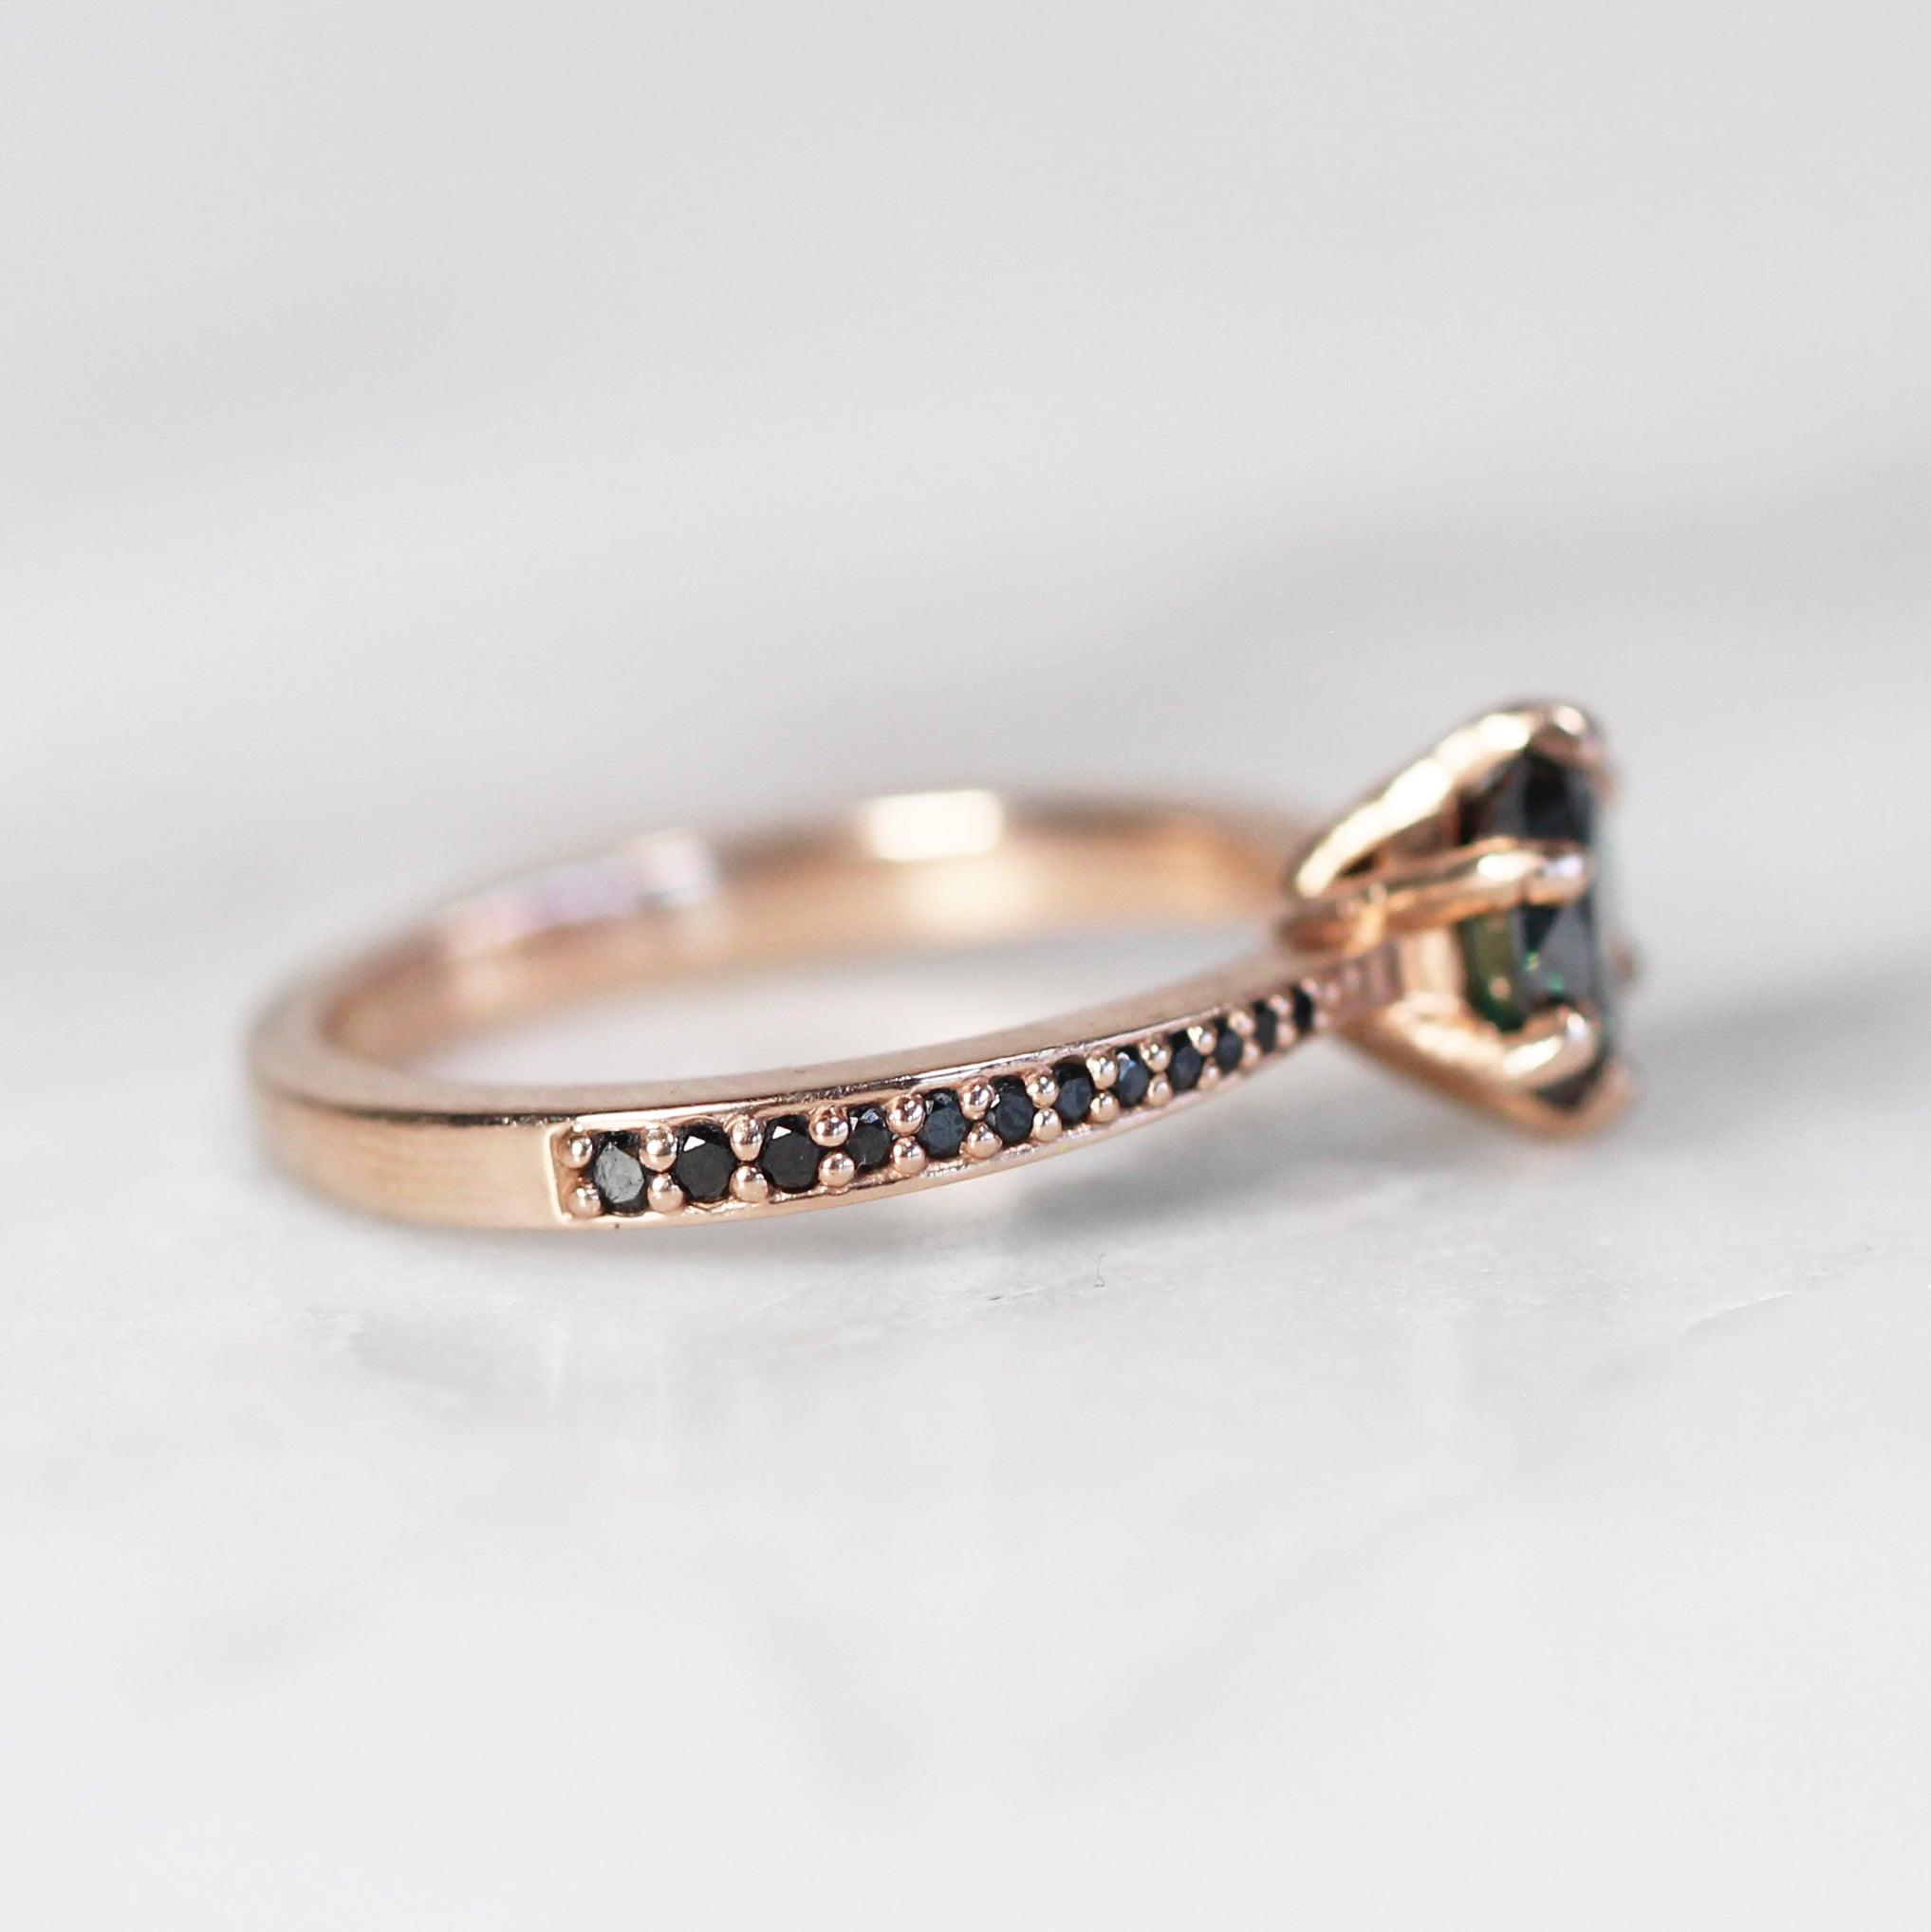 Maxine Ring with .70ct Moissanite in 10k Rose Gold - Custom - Salt & Pepper Celestial Diamond Engagement Rings and Wedding Bands  by Midwinter Co.